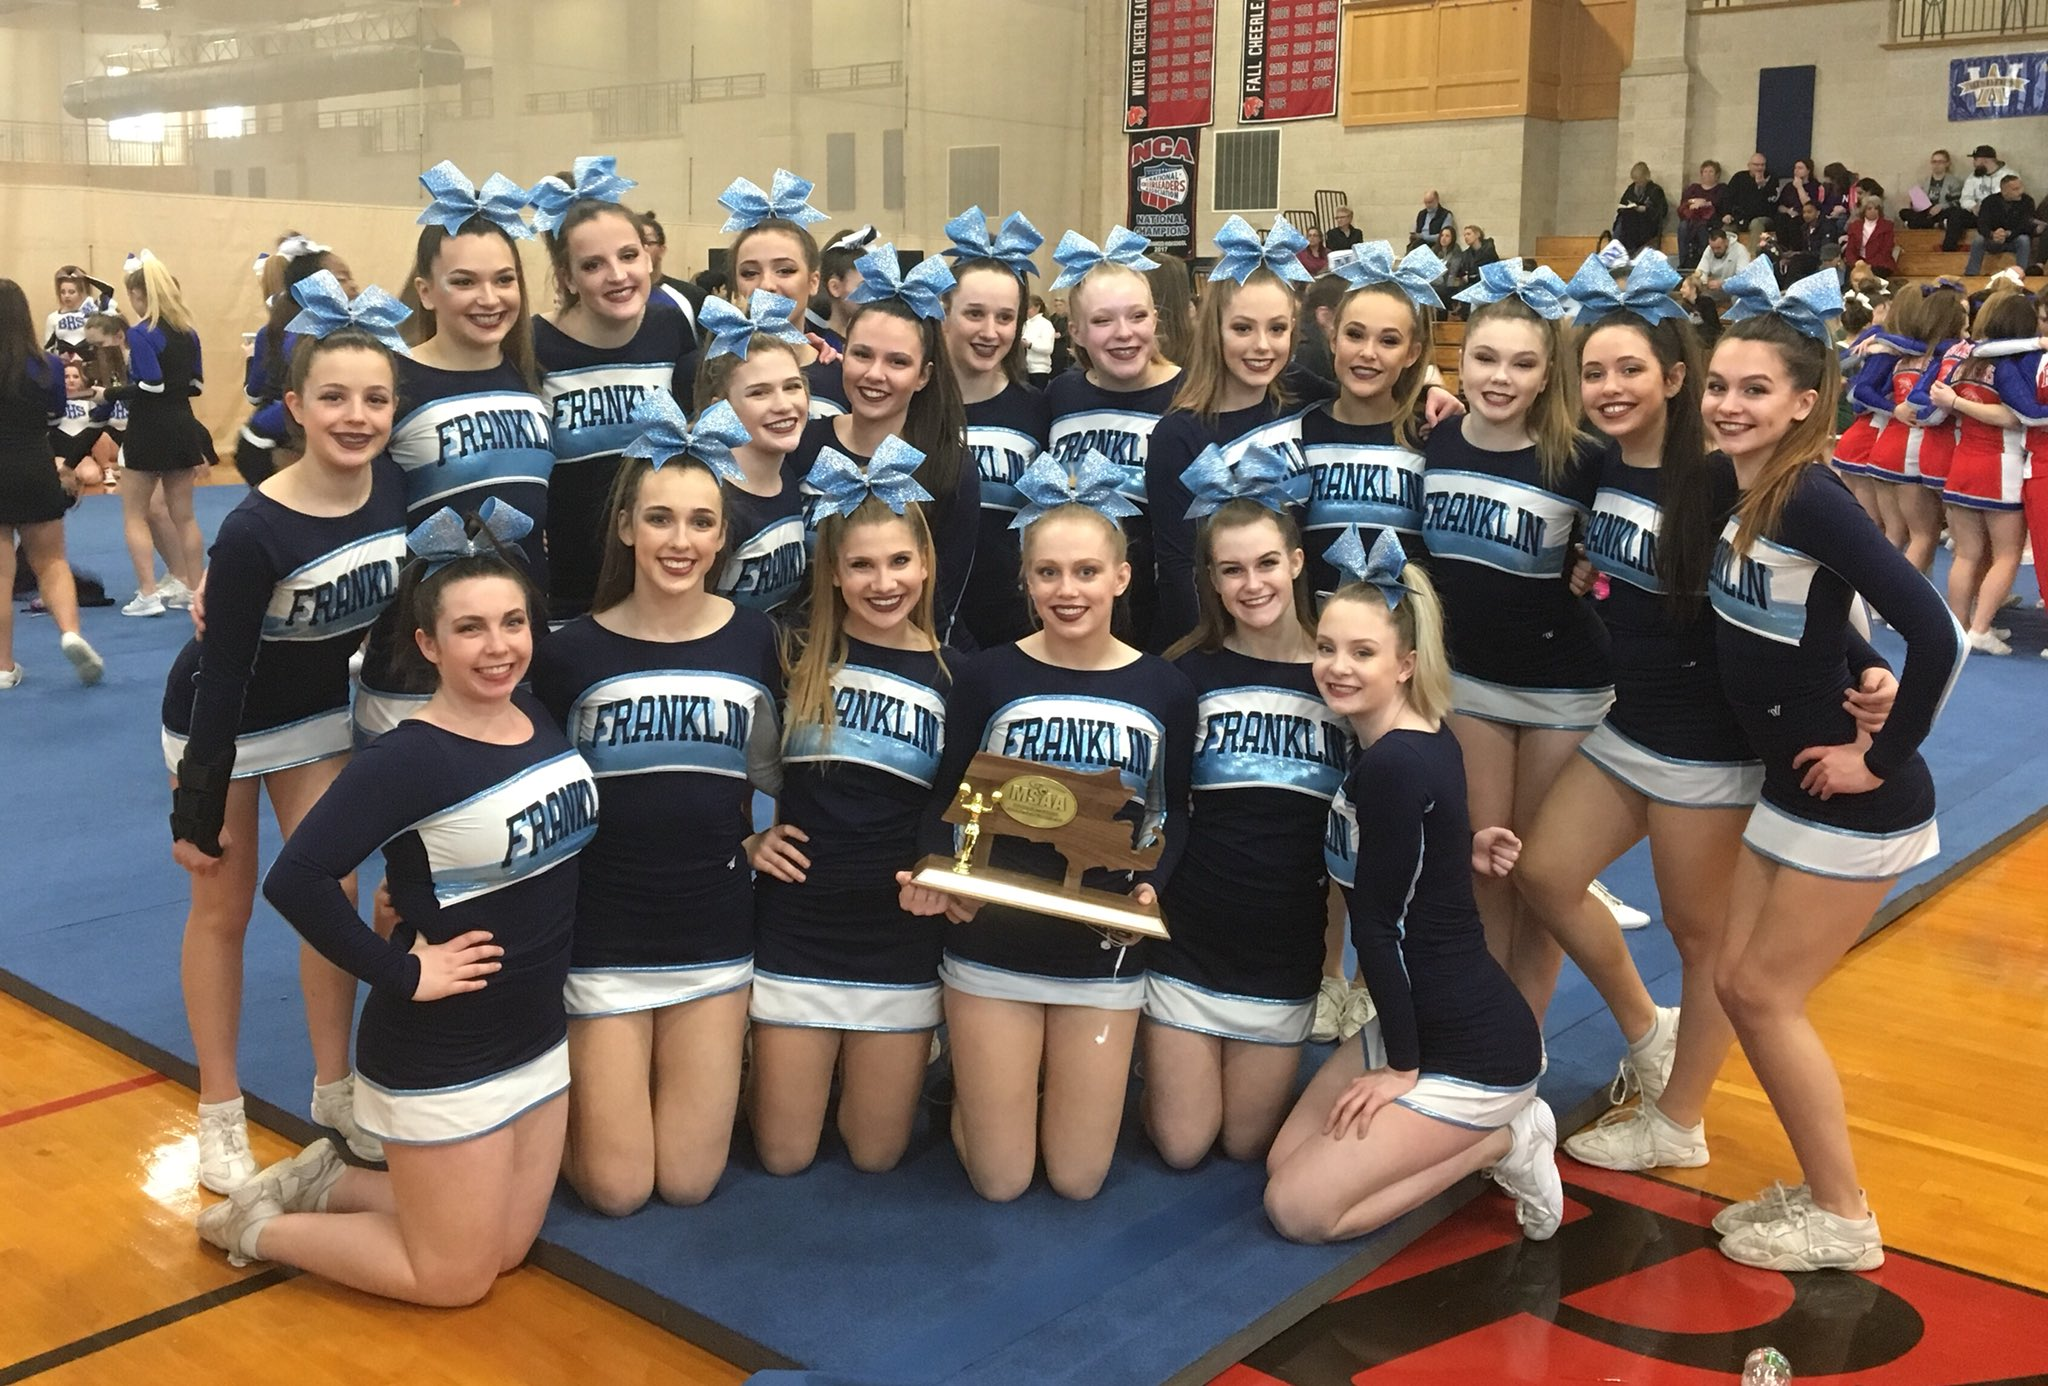 ...and here's your DIVISION 1 SOUTH REGIONAL CHAMPIONS!!! CONGRATS LADIES!! #ontostates #PantherPride